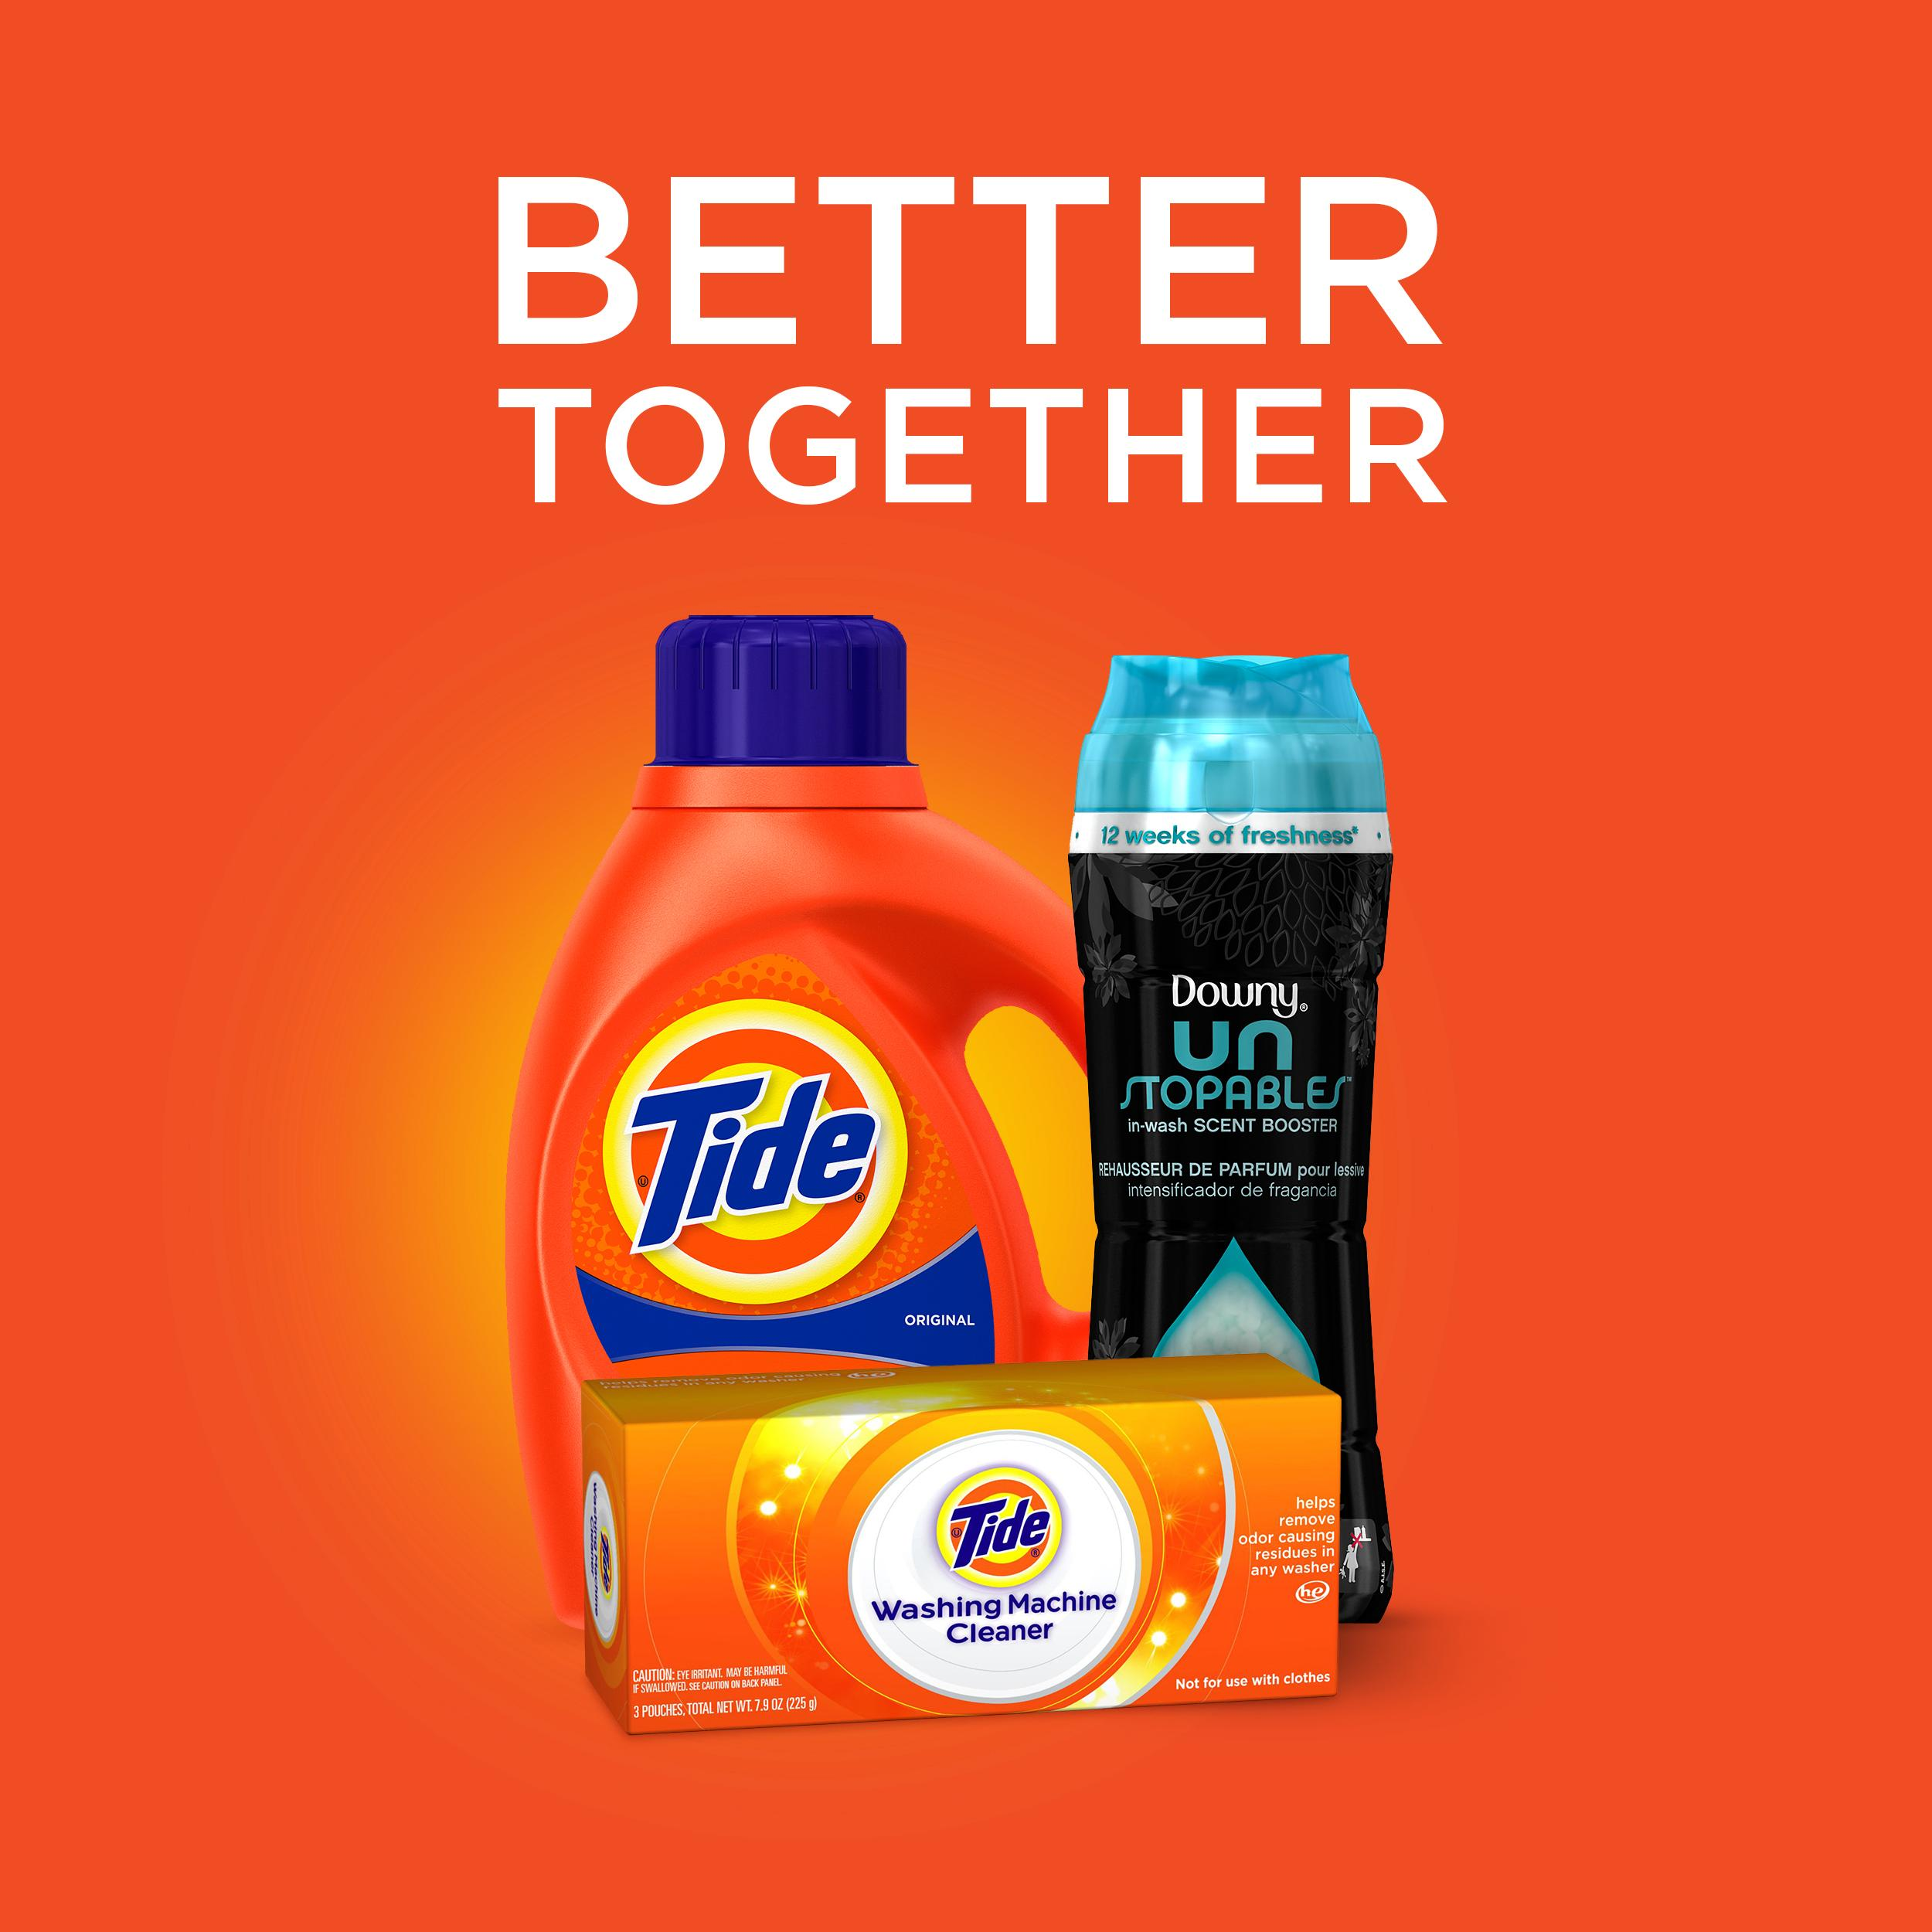 tide detergent Plus febreze® liquid laundry detergent get the powerful stain-removing power of tide® with febreze® freshness pleasant, renewing.